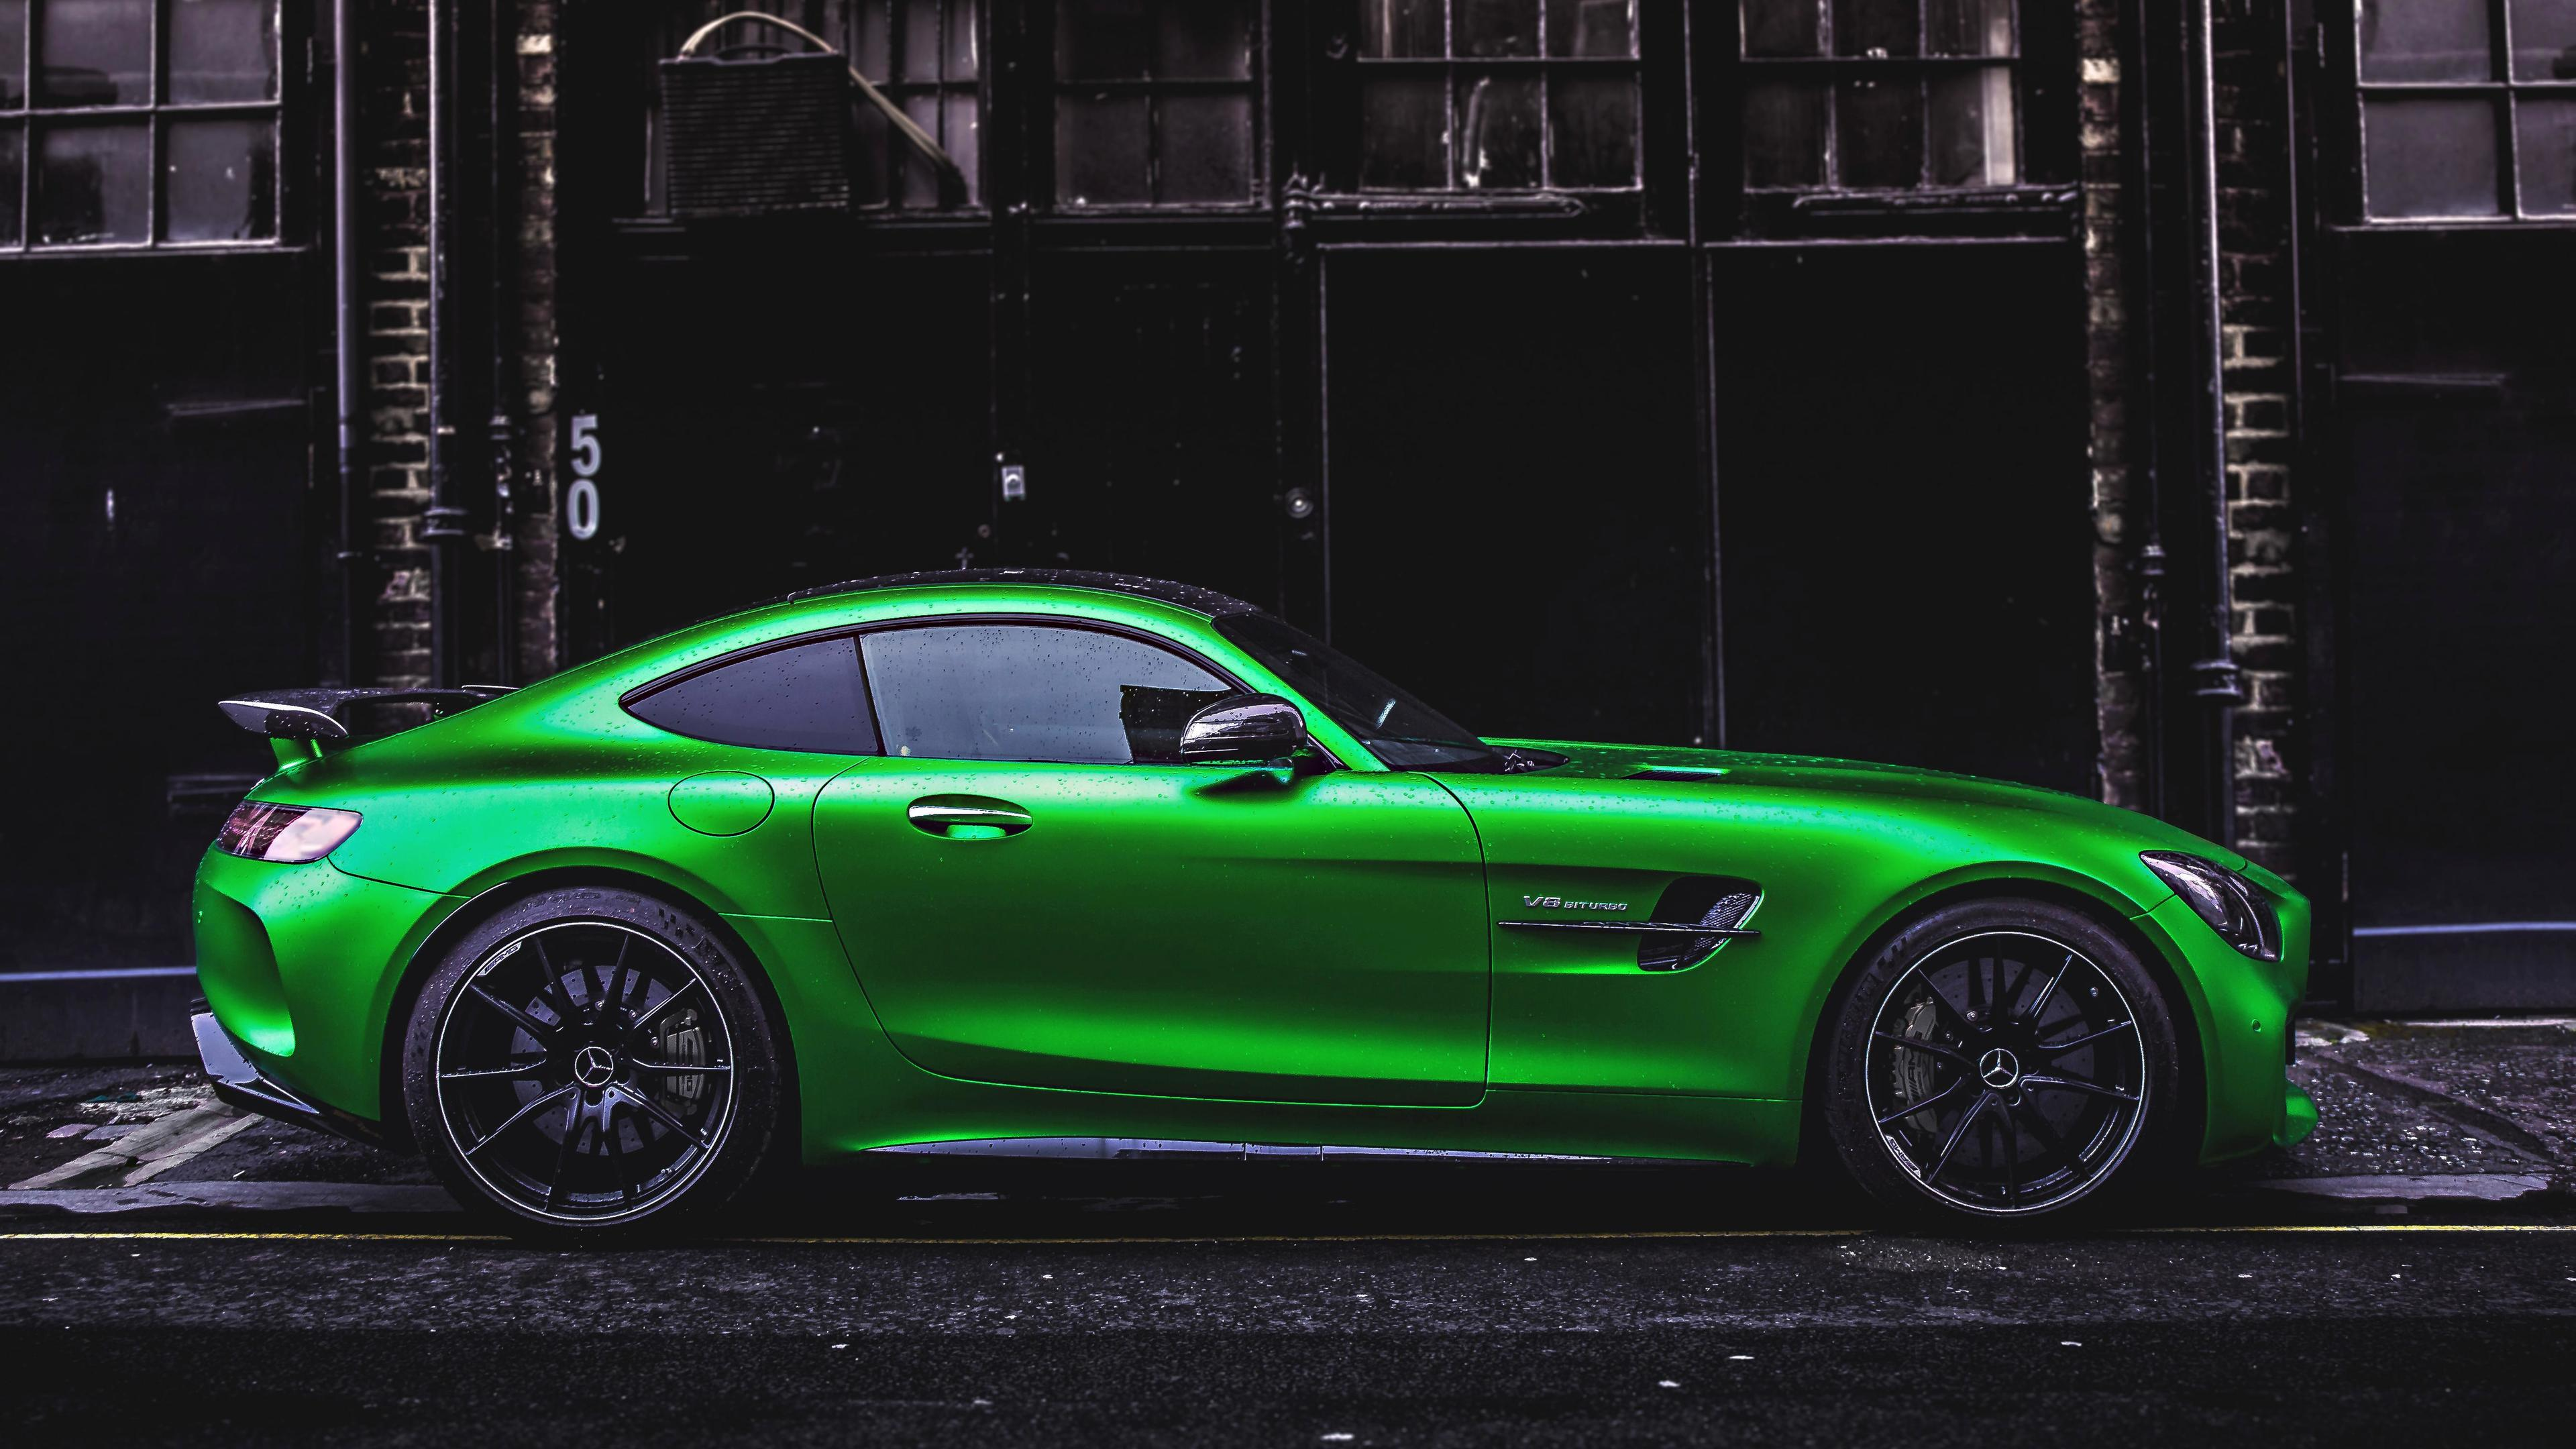 mercedes amg gt r 2018 4k 1546362411 - Mercedes AMG GT R 2018 4k - mercedes wallpapers, mercedes amg gtr wallpapers, hd-wallpapers, cars wallpapers, 5k wallpapers, 4k-wallpapers, 2018 cars wallpapers